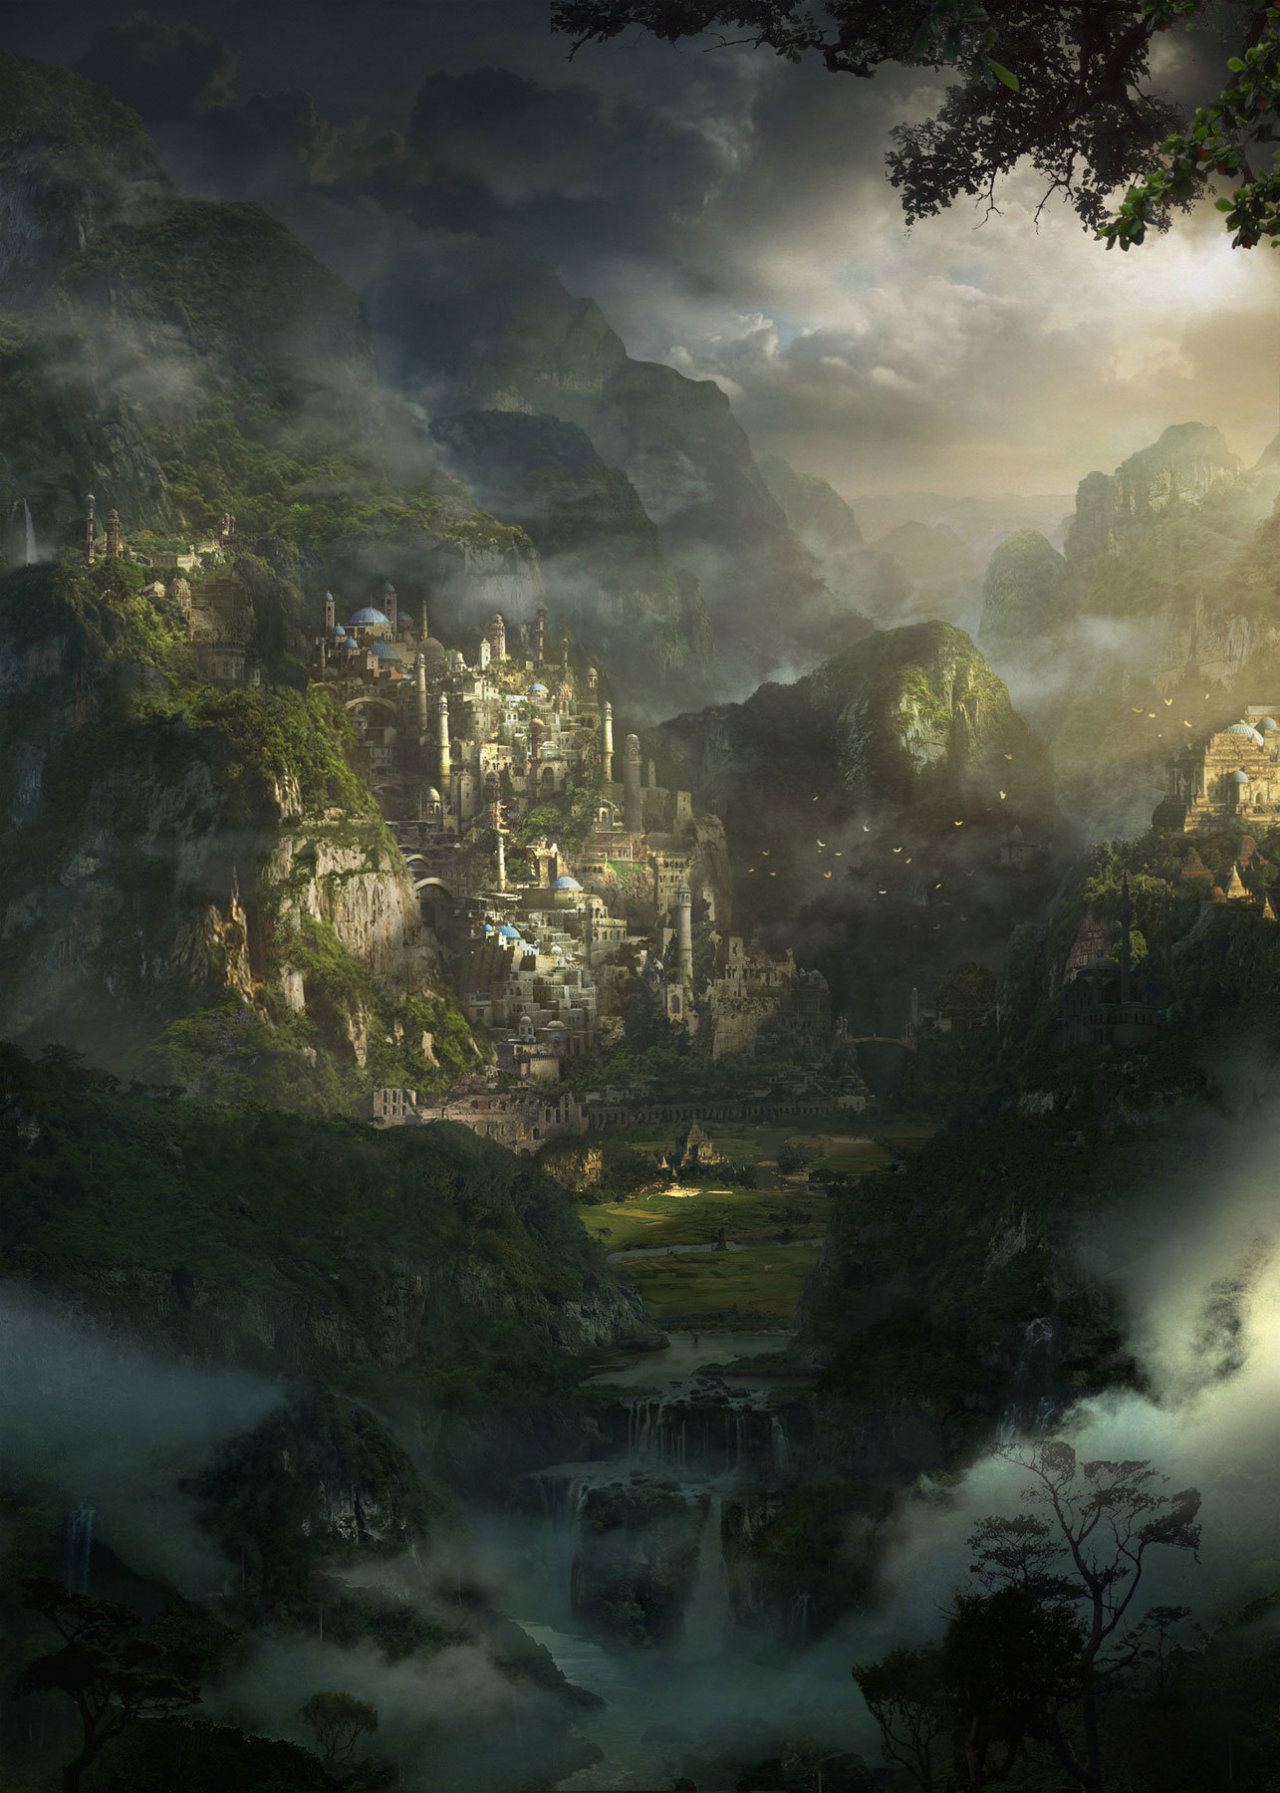 Fantasy Art Engine Castle In The Mist By Mohammad Ahmadvand